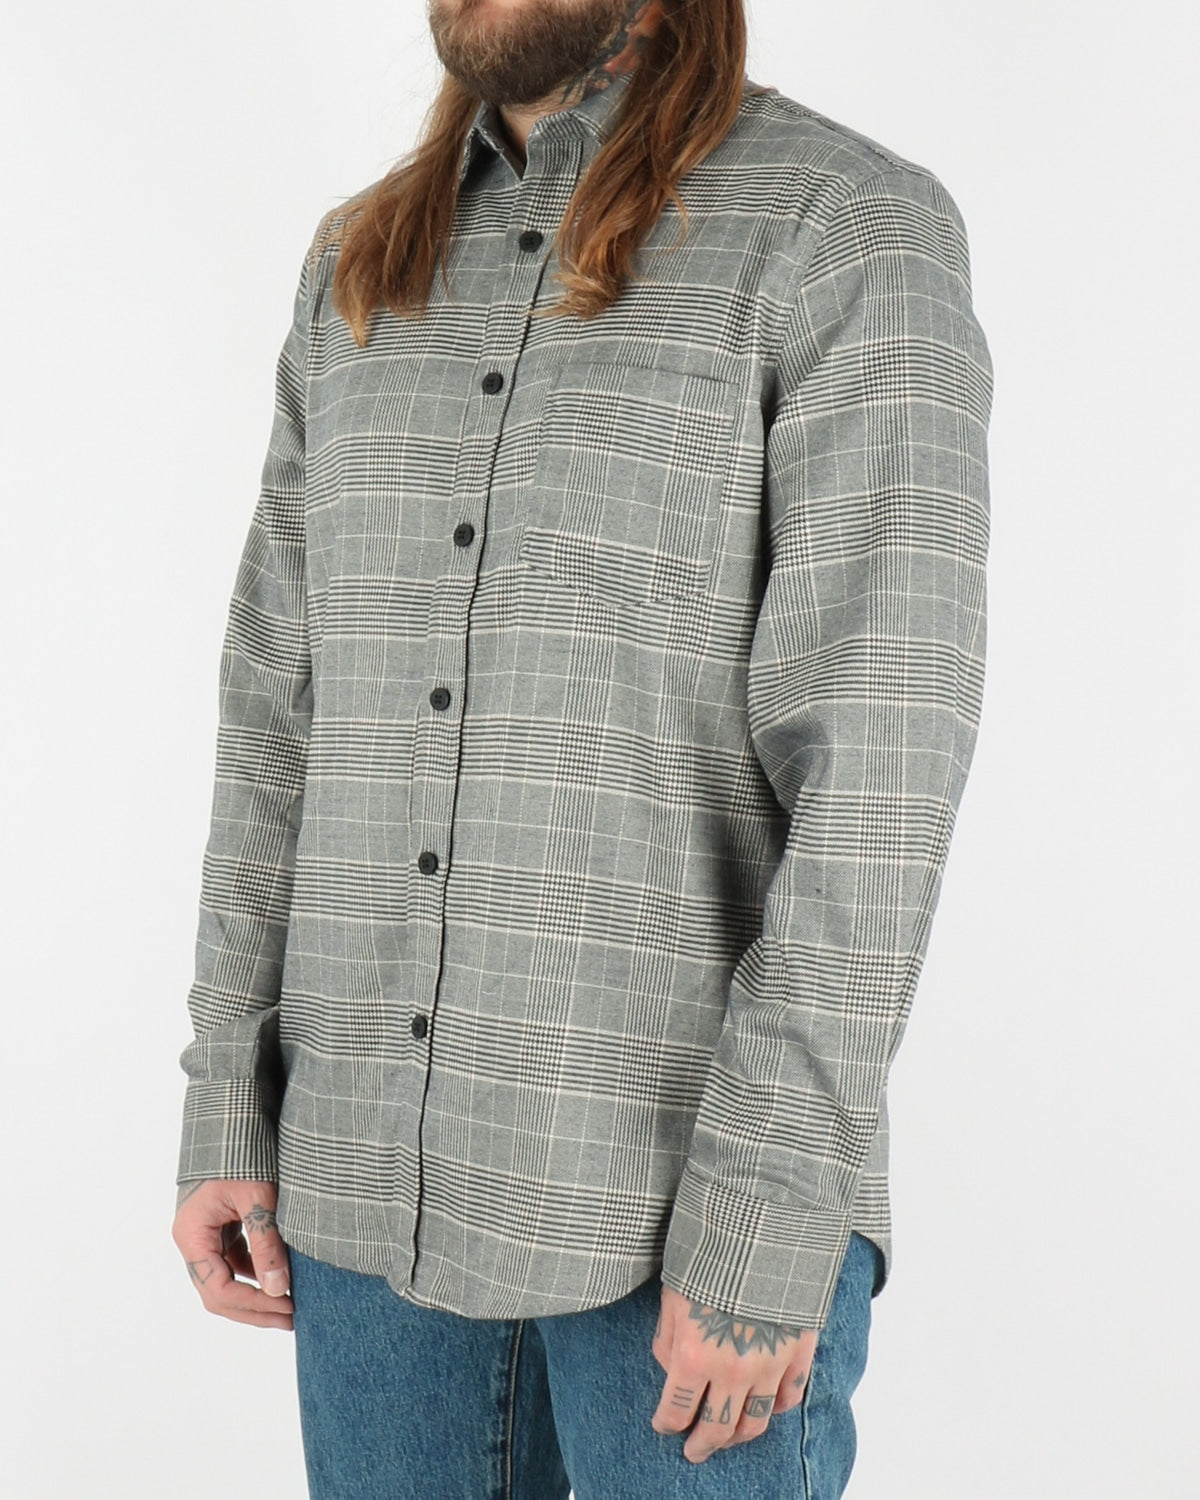 han kjobenhavn_one pocket shirt_grey tweed_2_4